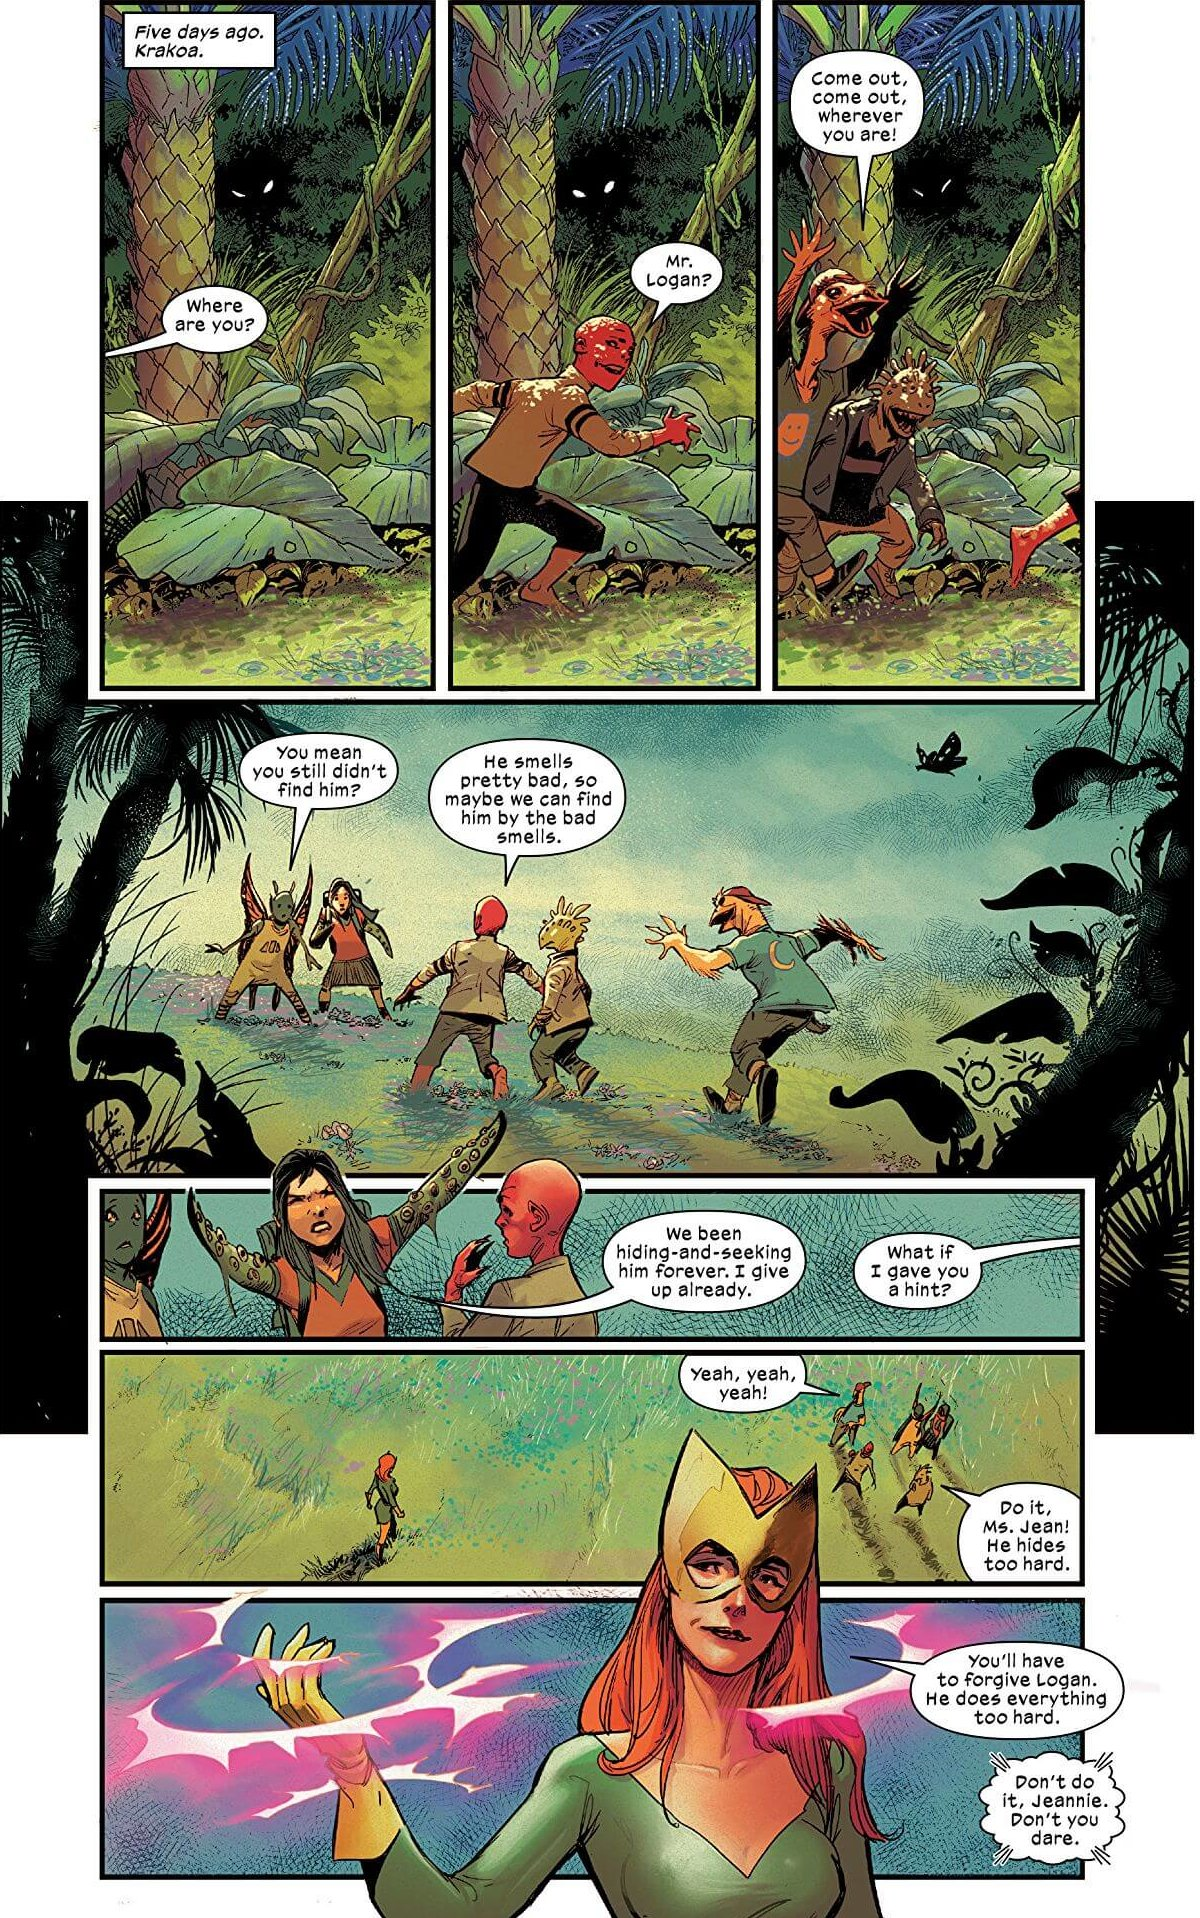 A comic page shows kids playing on Krakoa, a jungle like landscape surrounds them as Jean Grey AKA the masked hero Marvel Girl uses her powers to help them